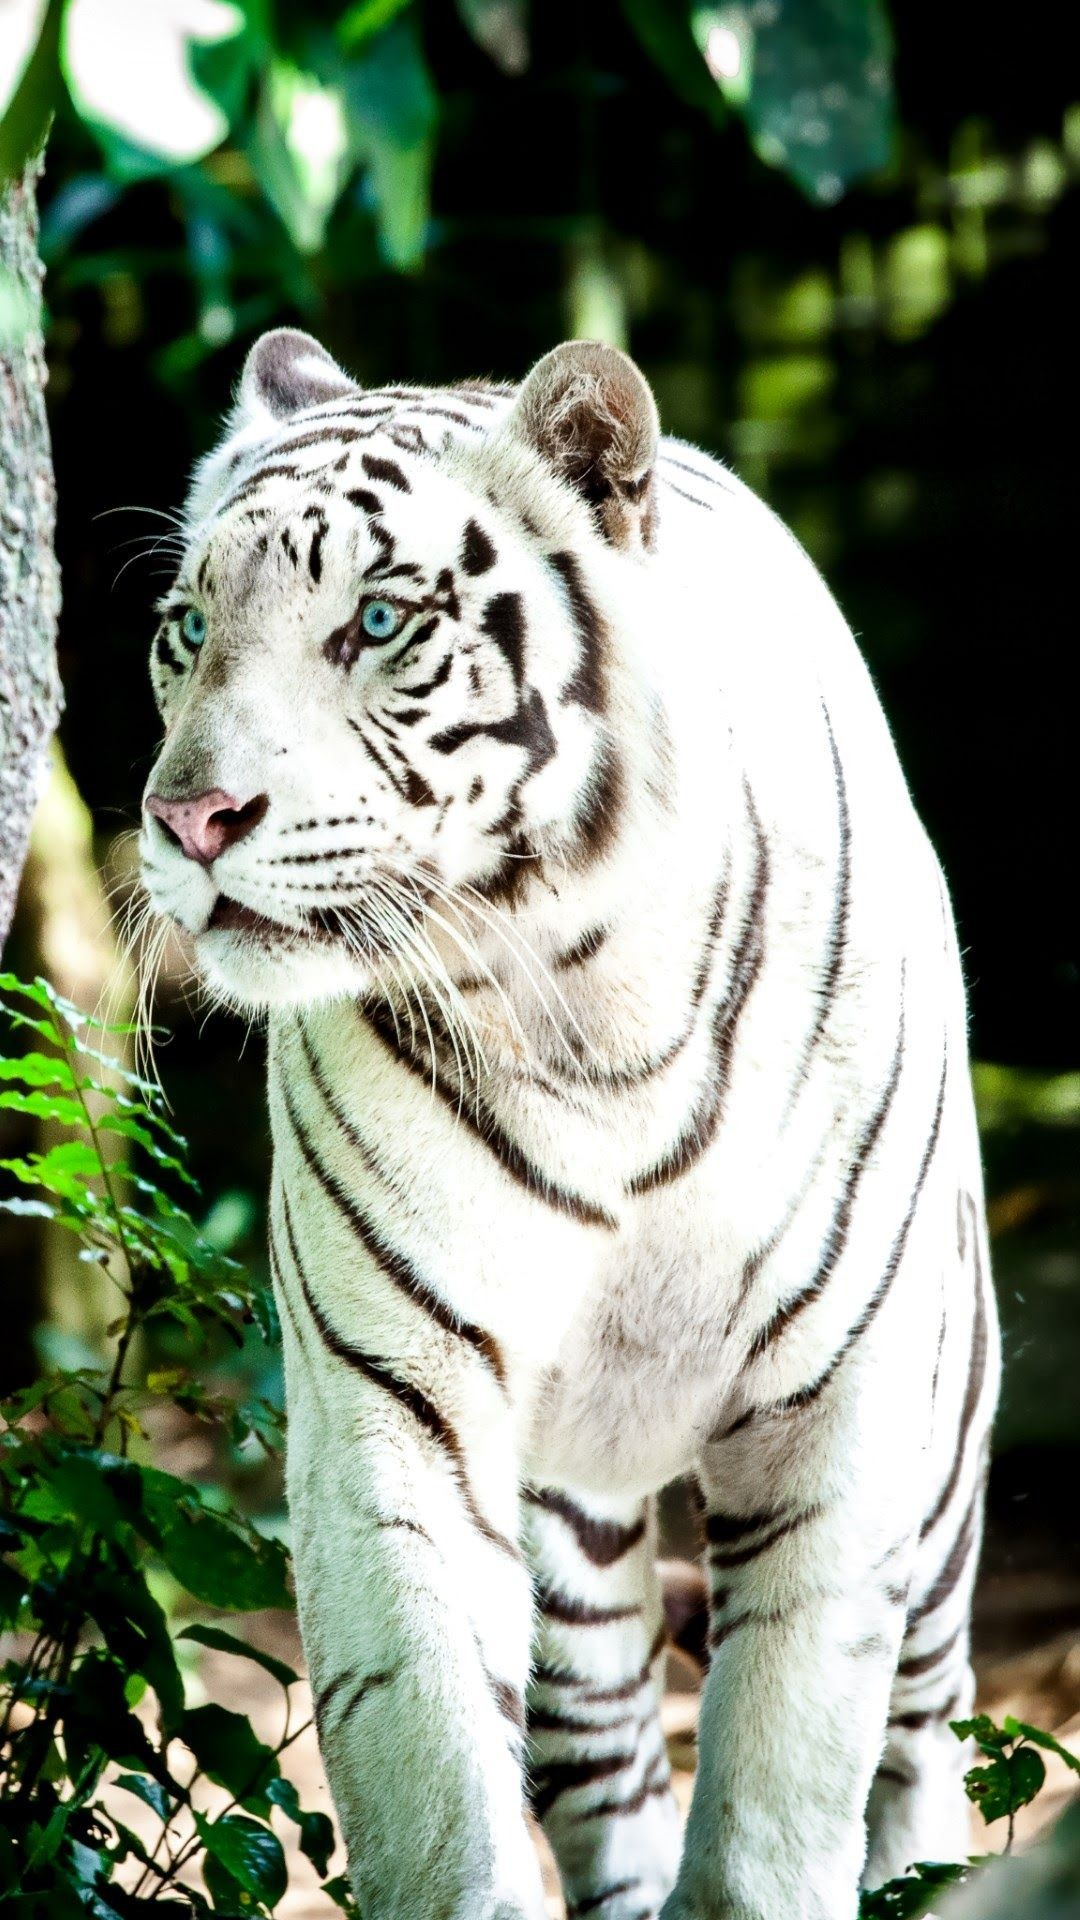 1080x1920 White Tiger Wallpapers A White Tiger Wallpaper 4k Hd 1080x1920 Download Hd Wallpaper Wallpapertip